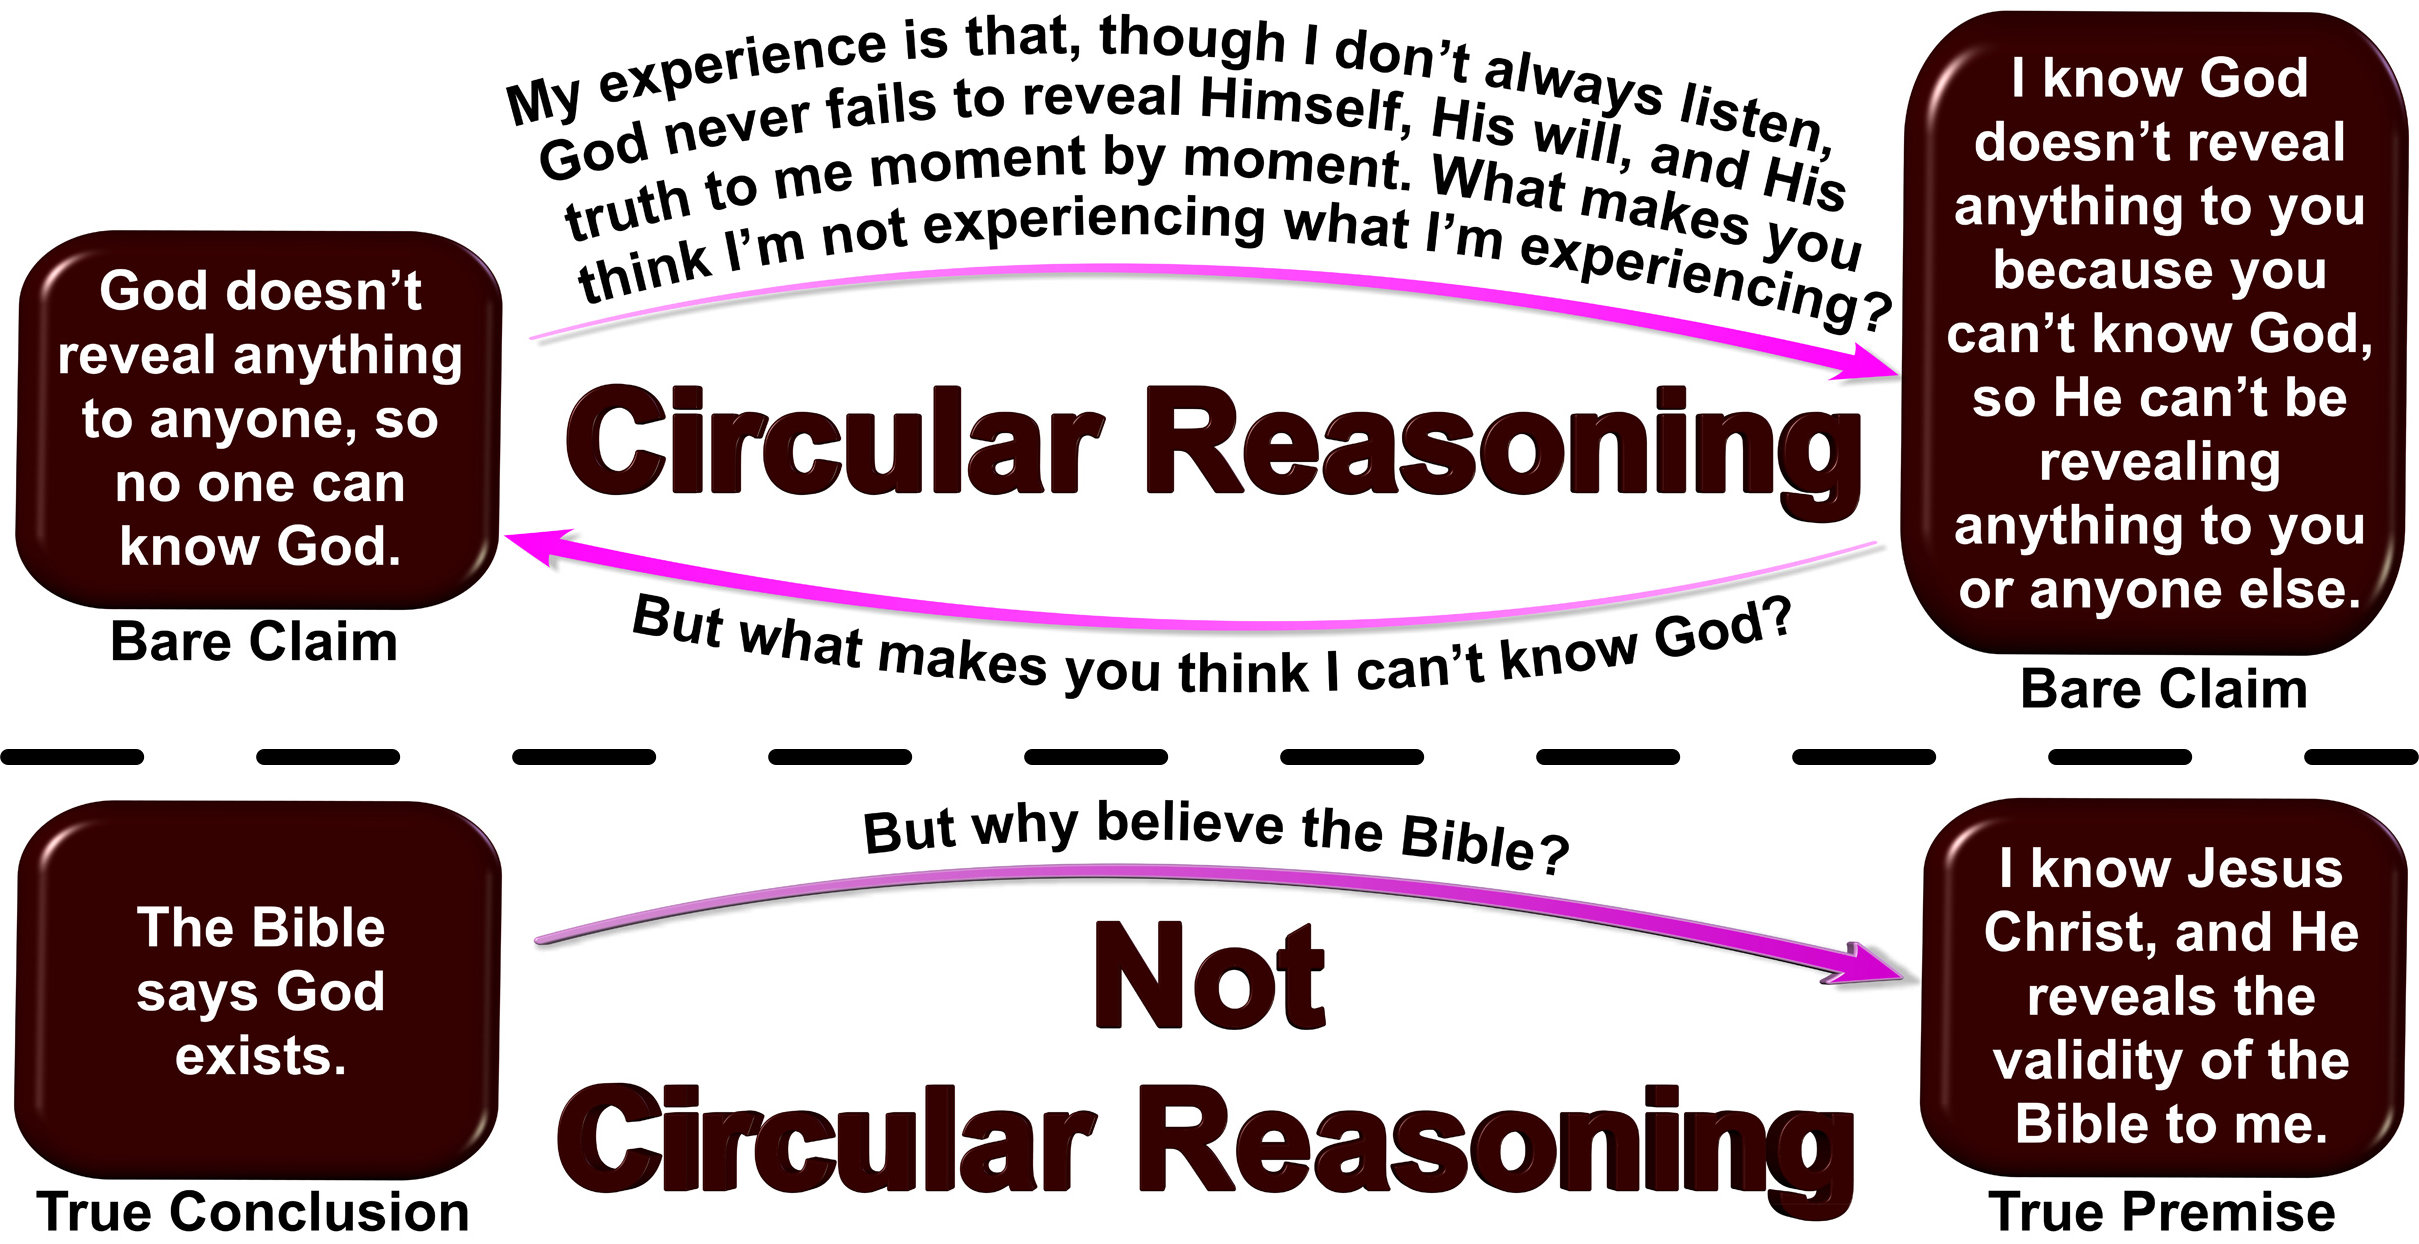 Acknowledging Christ and His leading is the only way to avoid irrational thinking.